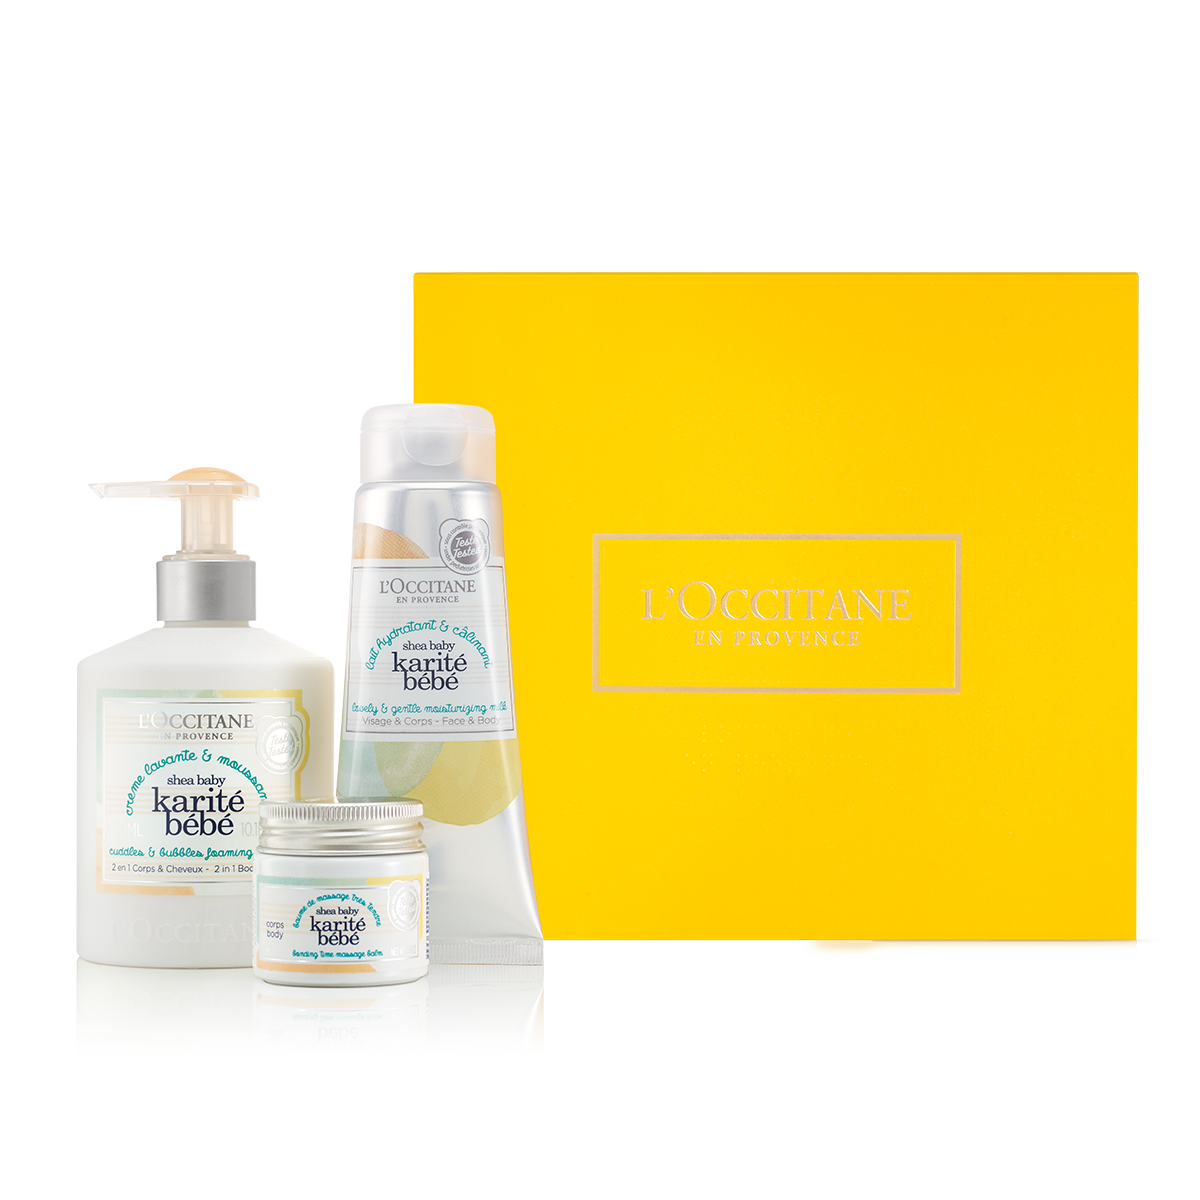 Shea Baby Essentials - L'Occitane